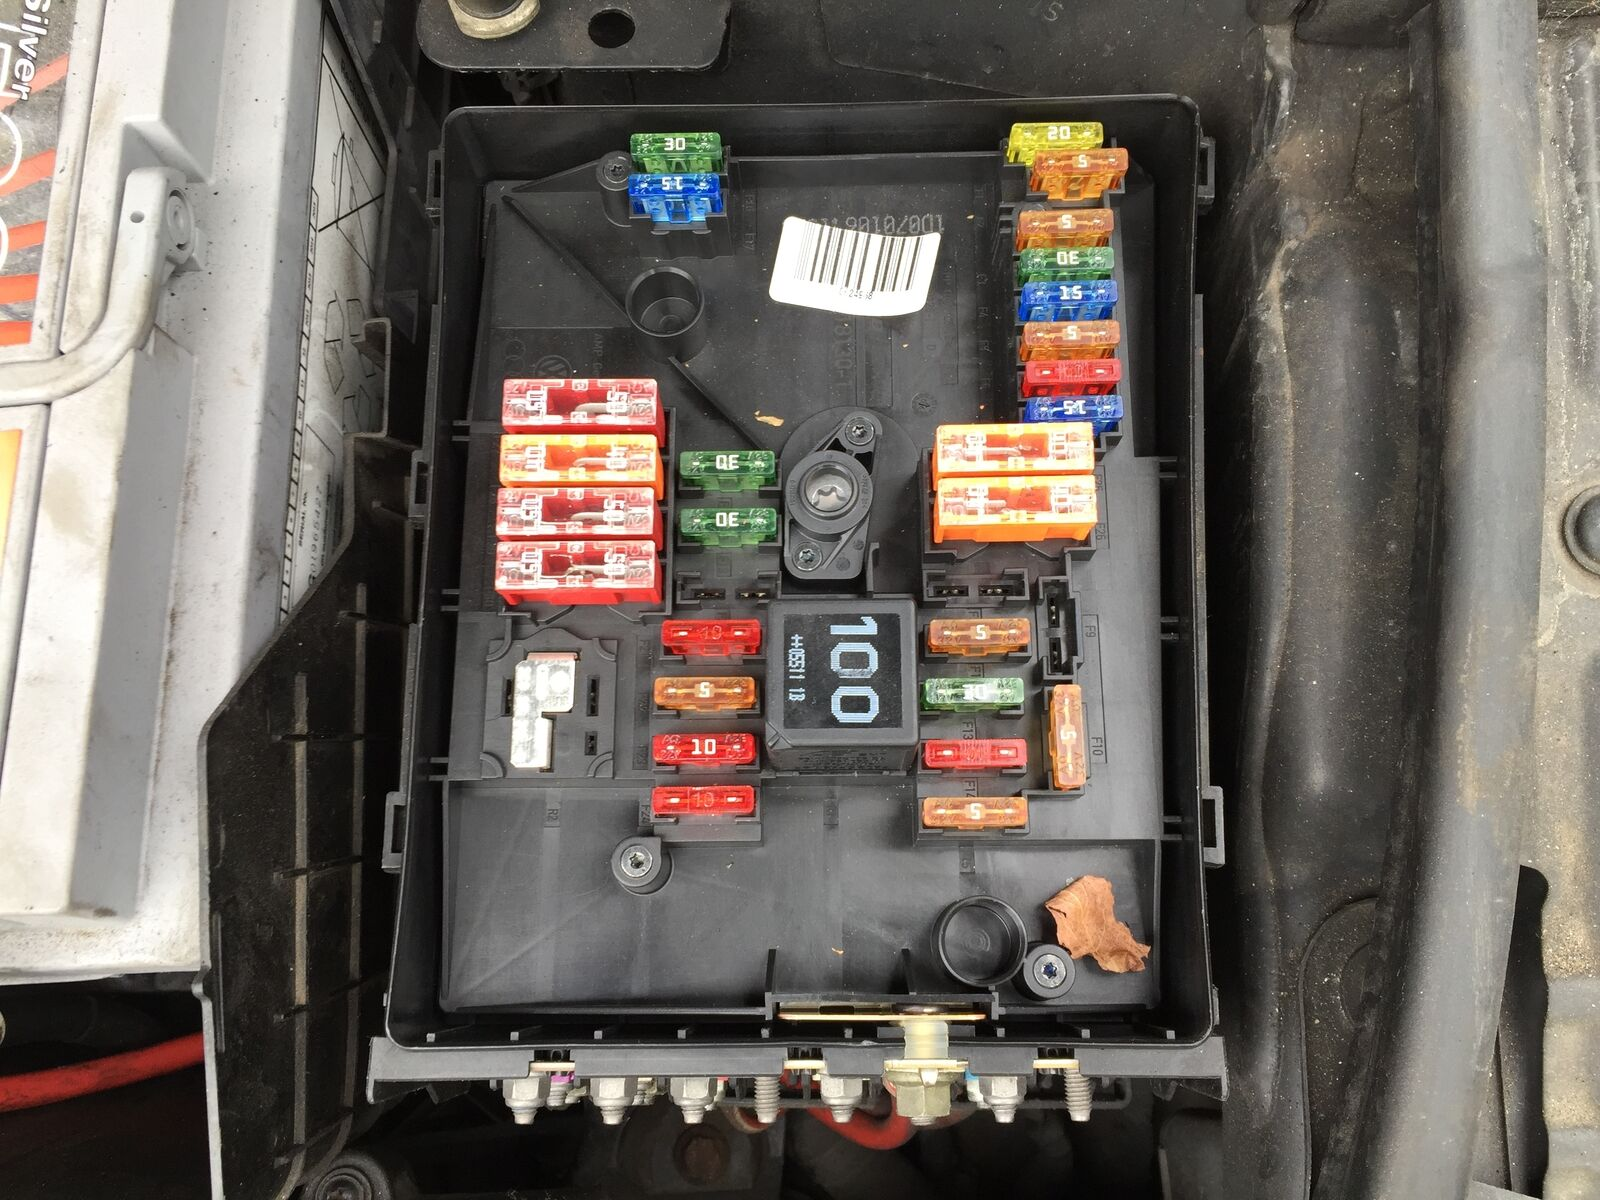 audi a3 2005 2008 2 0 tdi fuse box in engine bay 25 00 rh picclick co uk 07 audi a3 fuse box diagram 07 audi a3 fuse box diagram